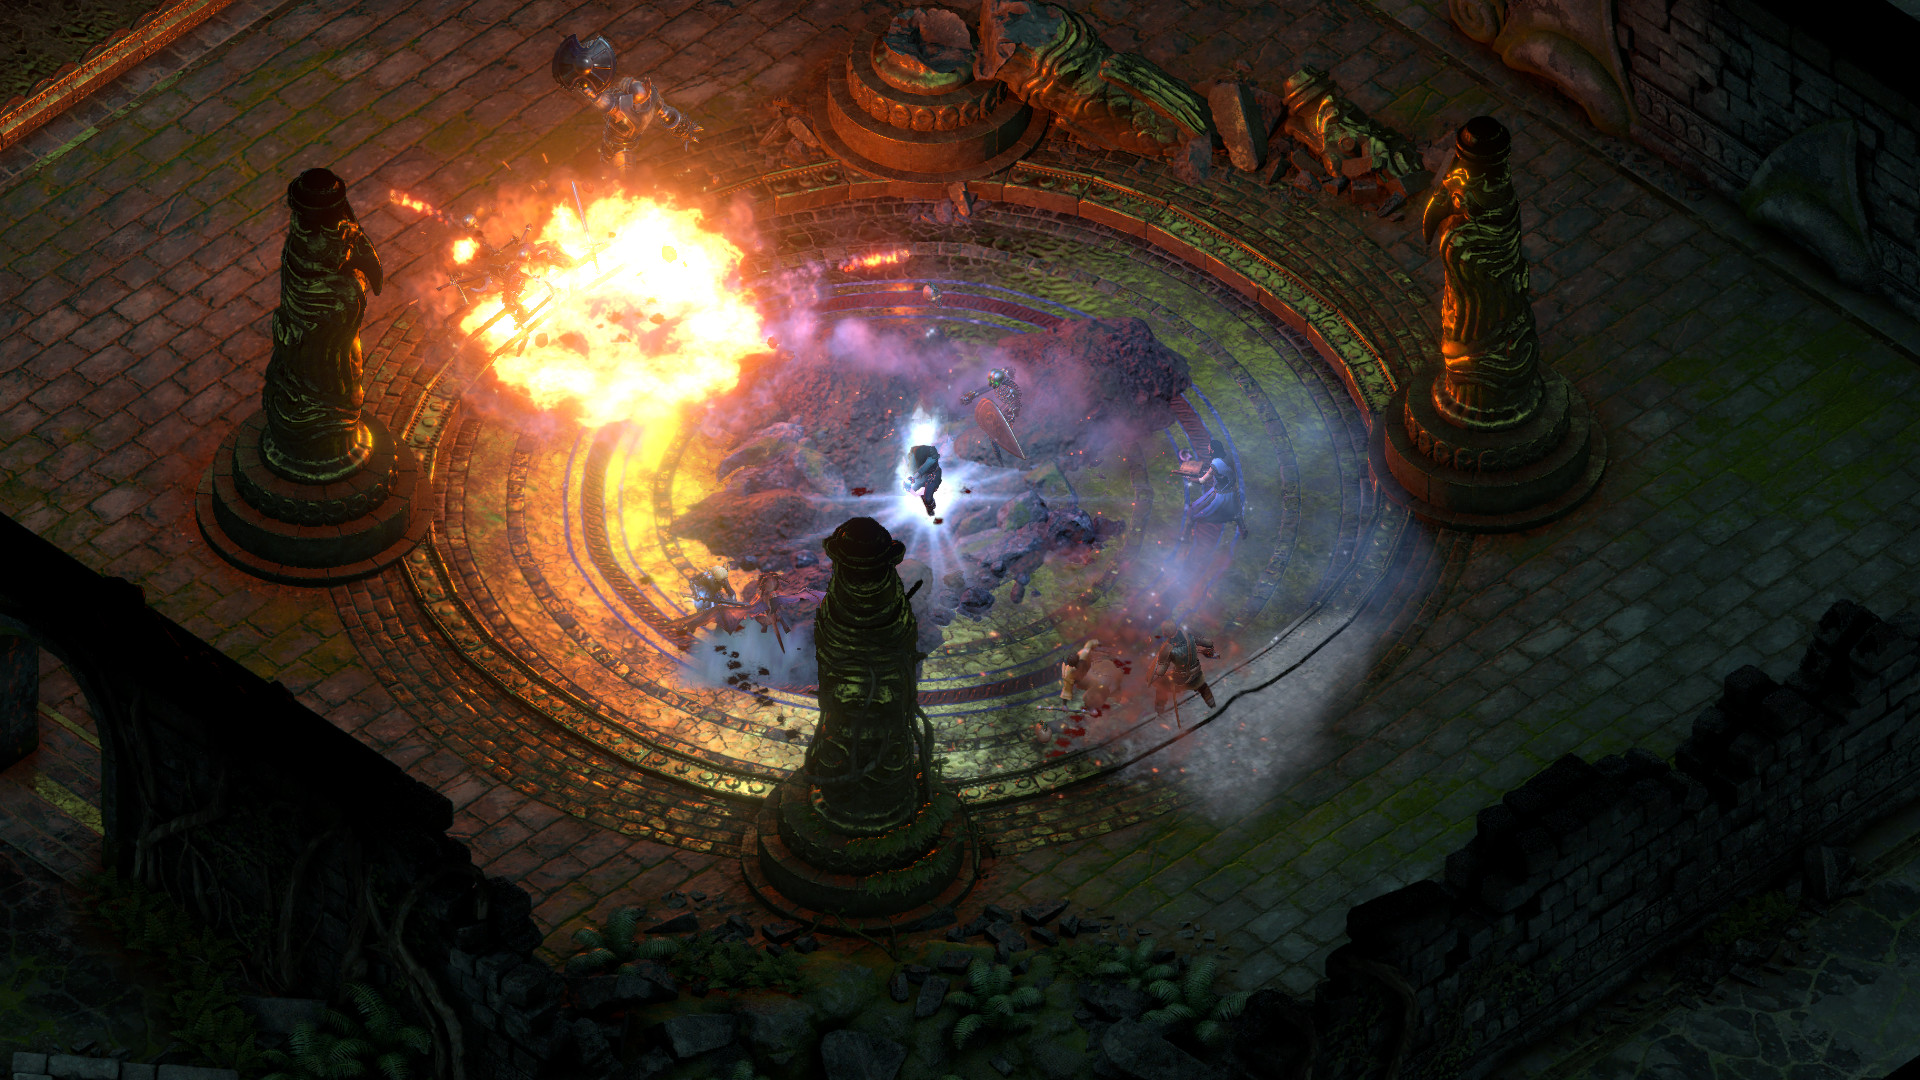 Pillars of Eternity II: Deadfire - Where To Find All